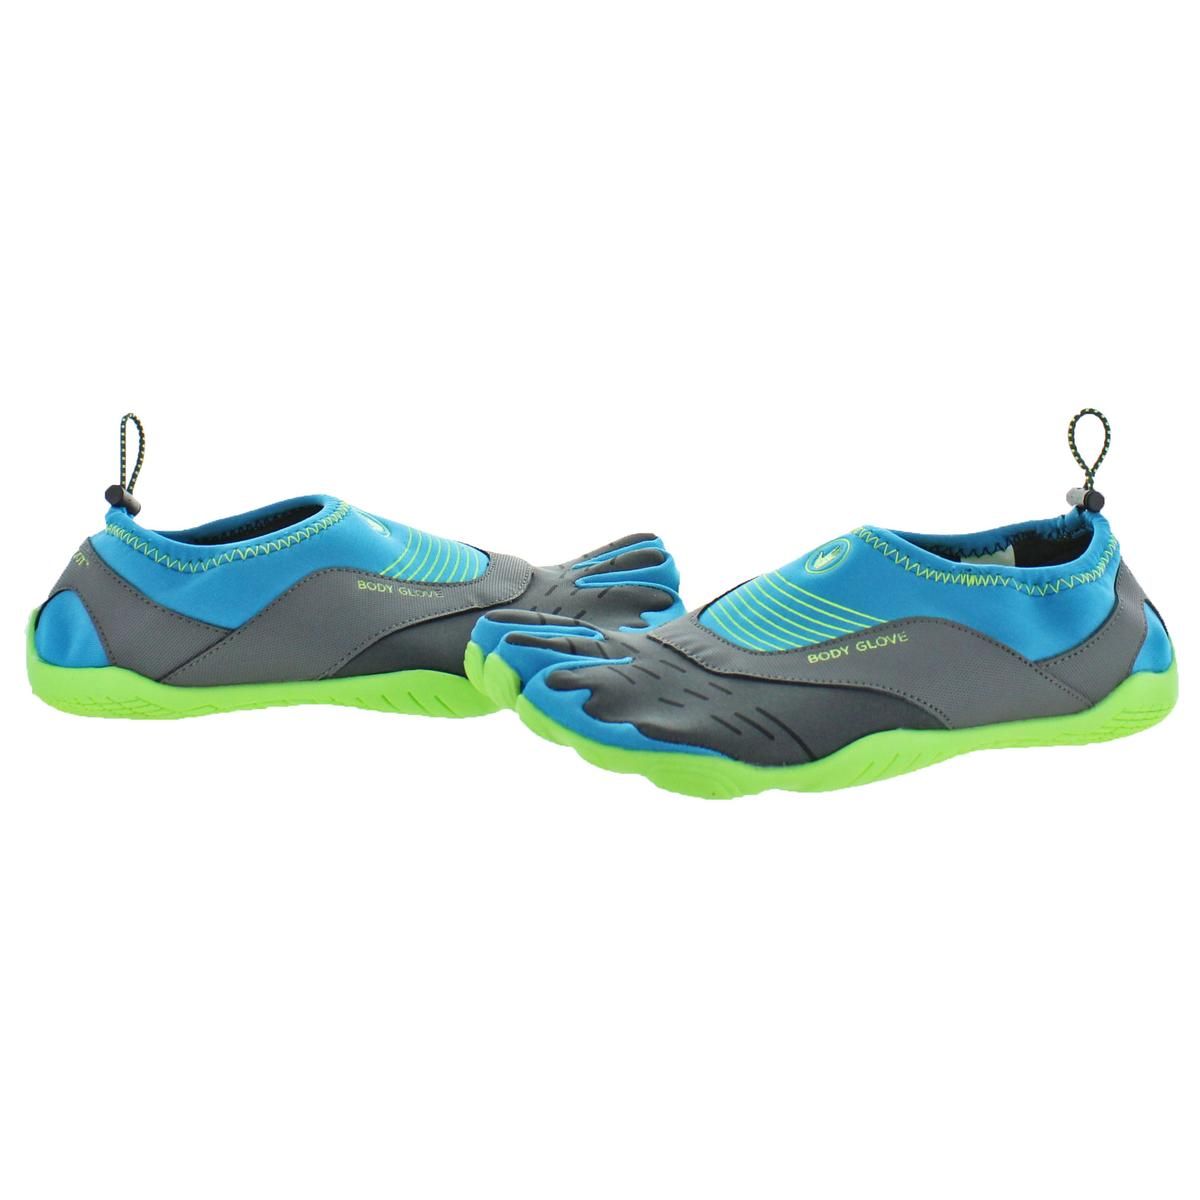 Body-Glove-Women-039-s-Cinch-Neoprene-Barefoot-Minimalist-Three-Toe-Water-Shoes thumbnail 6